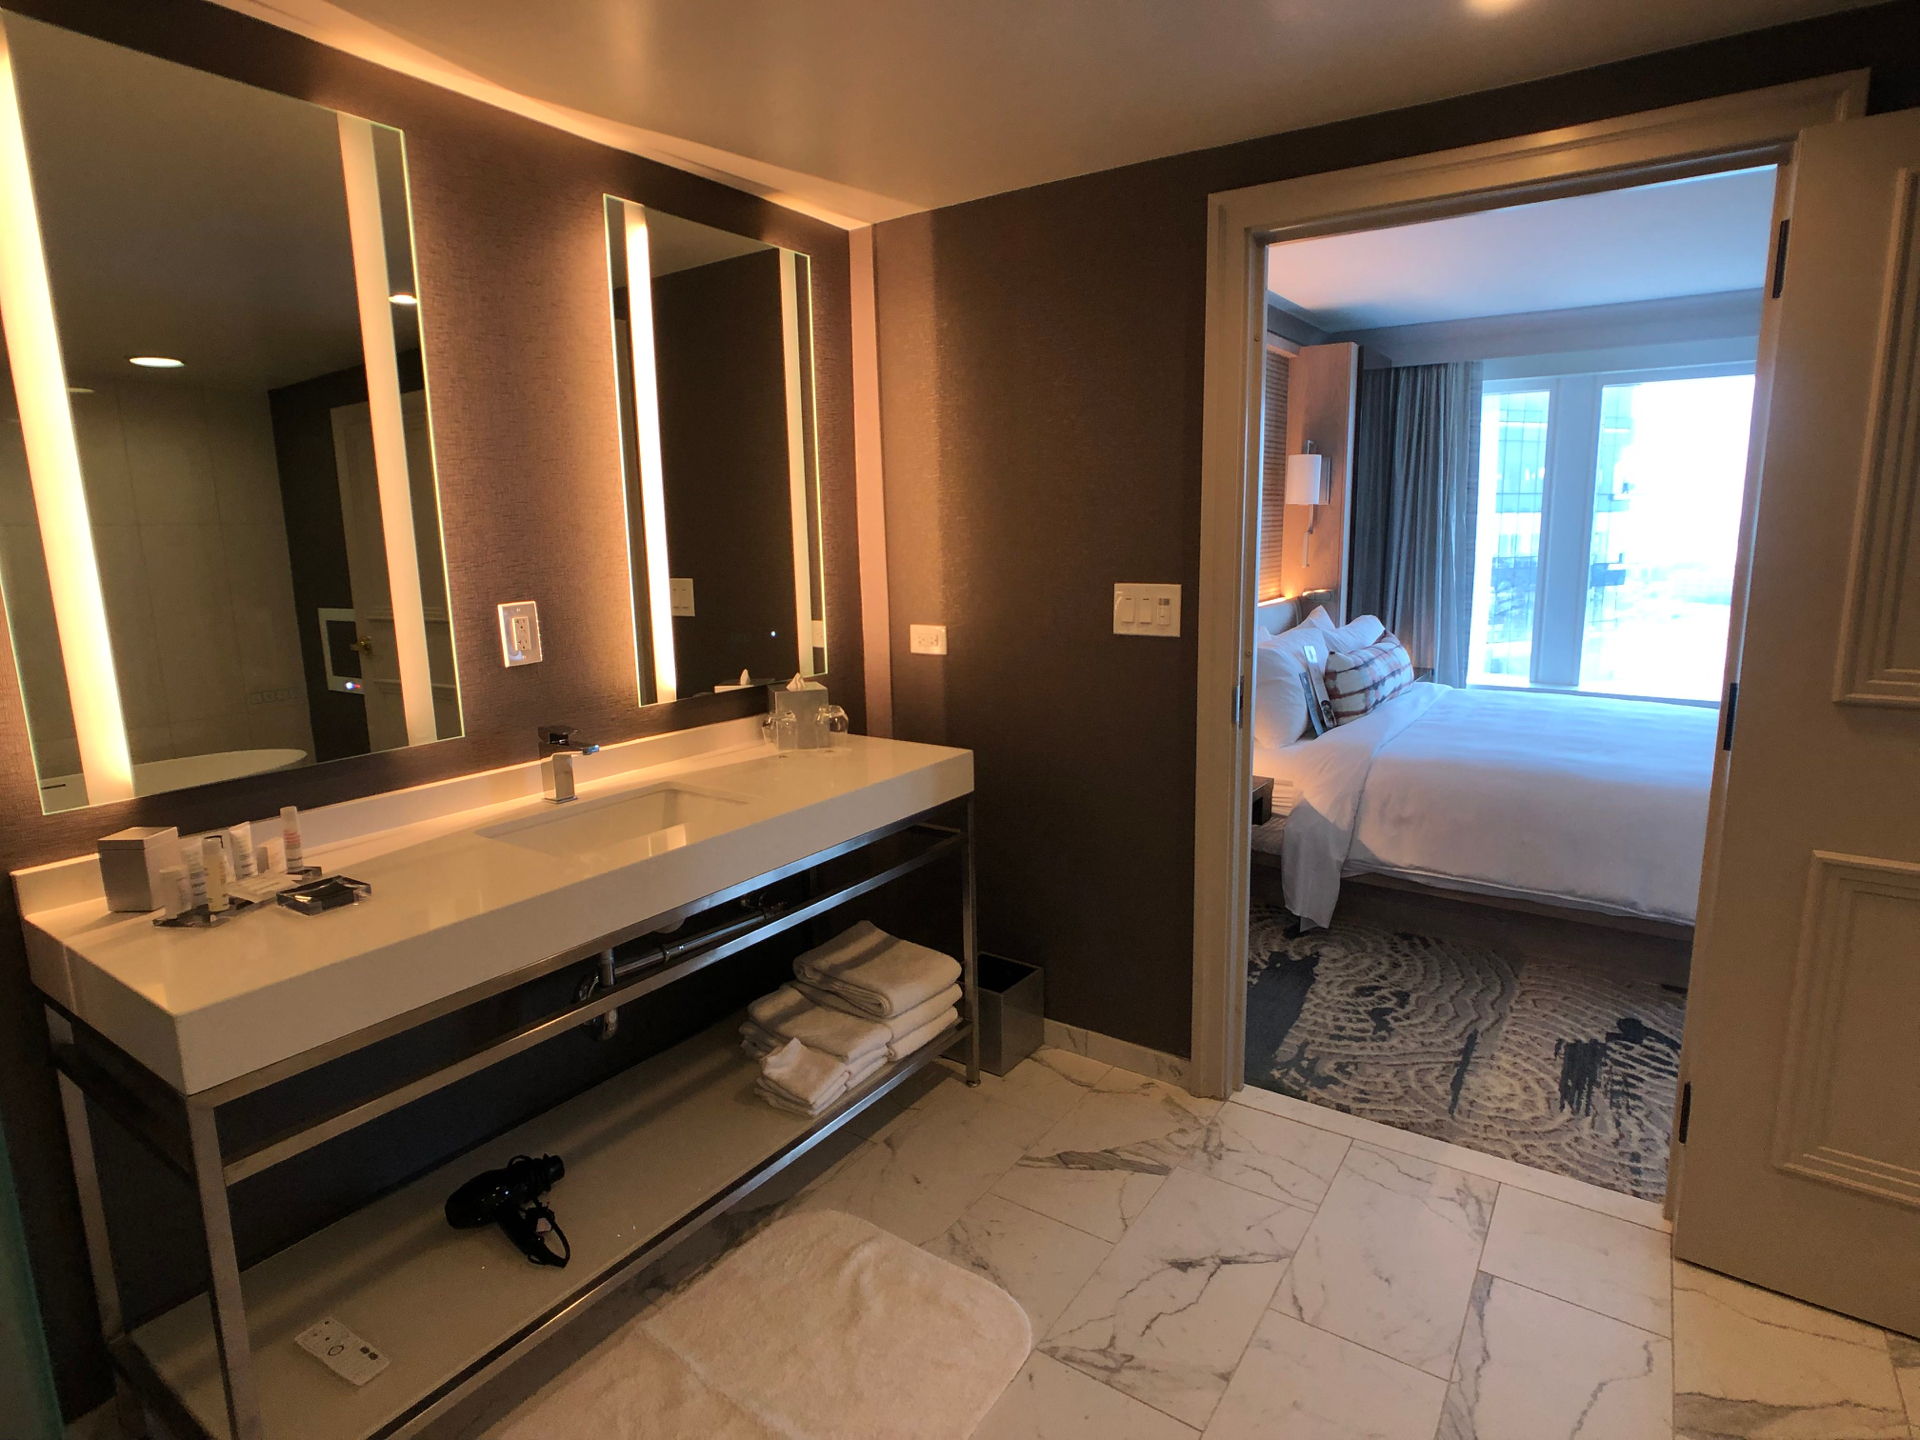 Baltimore Marriott Waterfront hotel guest bed and bathroom